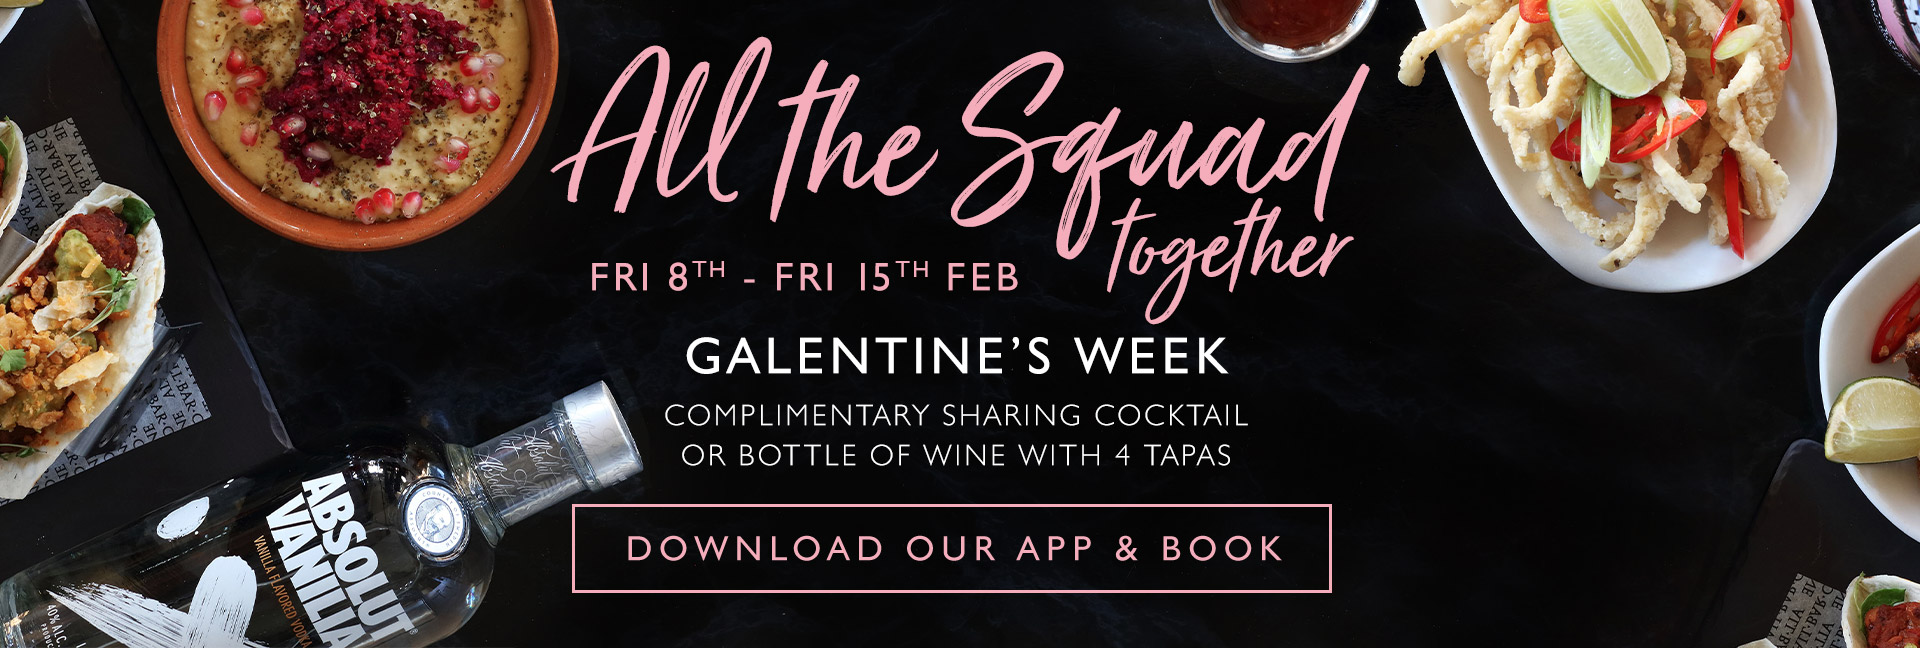 Enjoy our cocktails this Galentine's Day